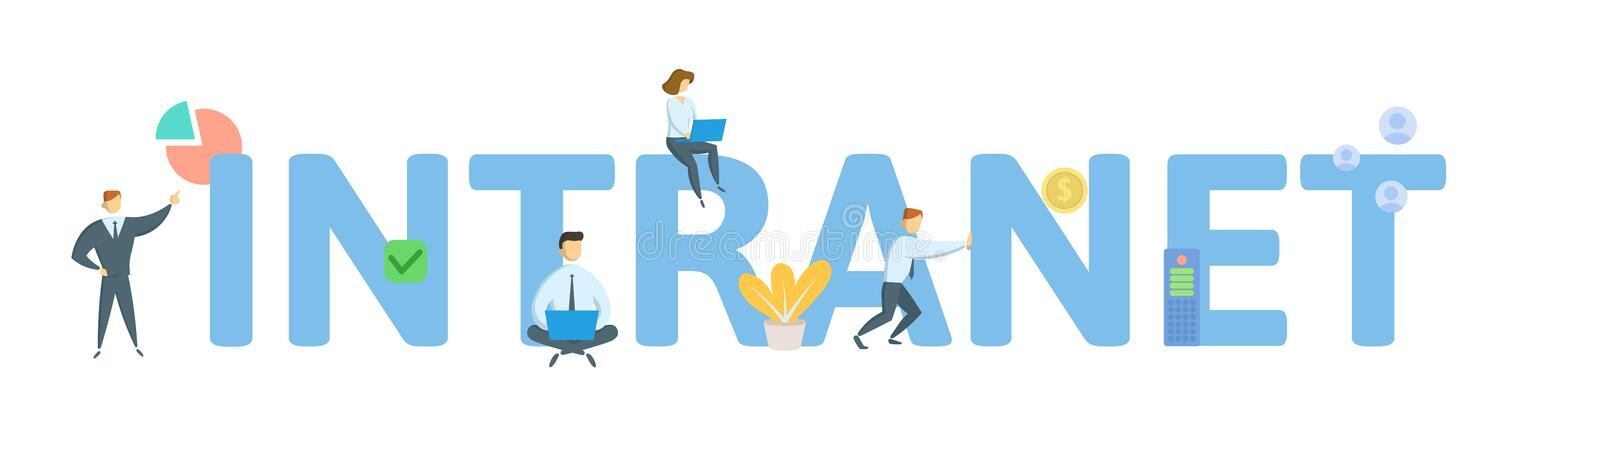 INTRANET. Concept with people, letters and icons. Flat vector illustration. Isolated on white background. INTRANET. Concept with people, letters and icons stock illustration